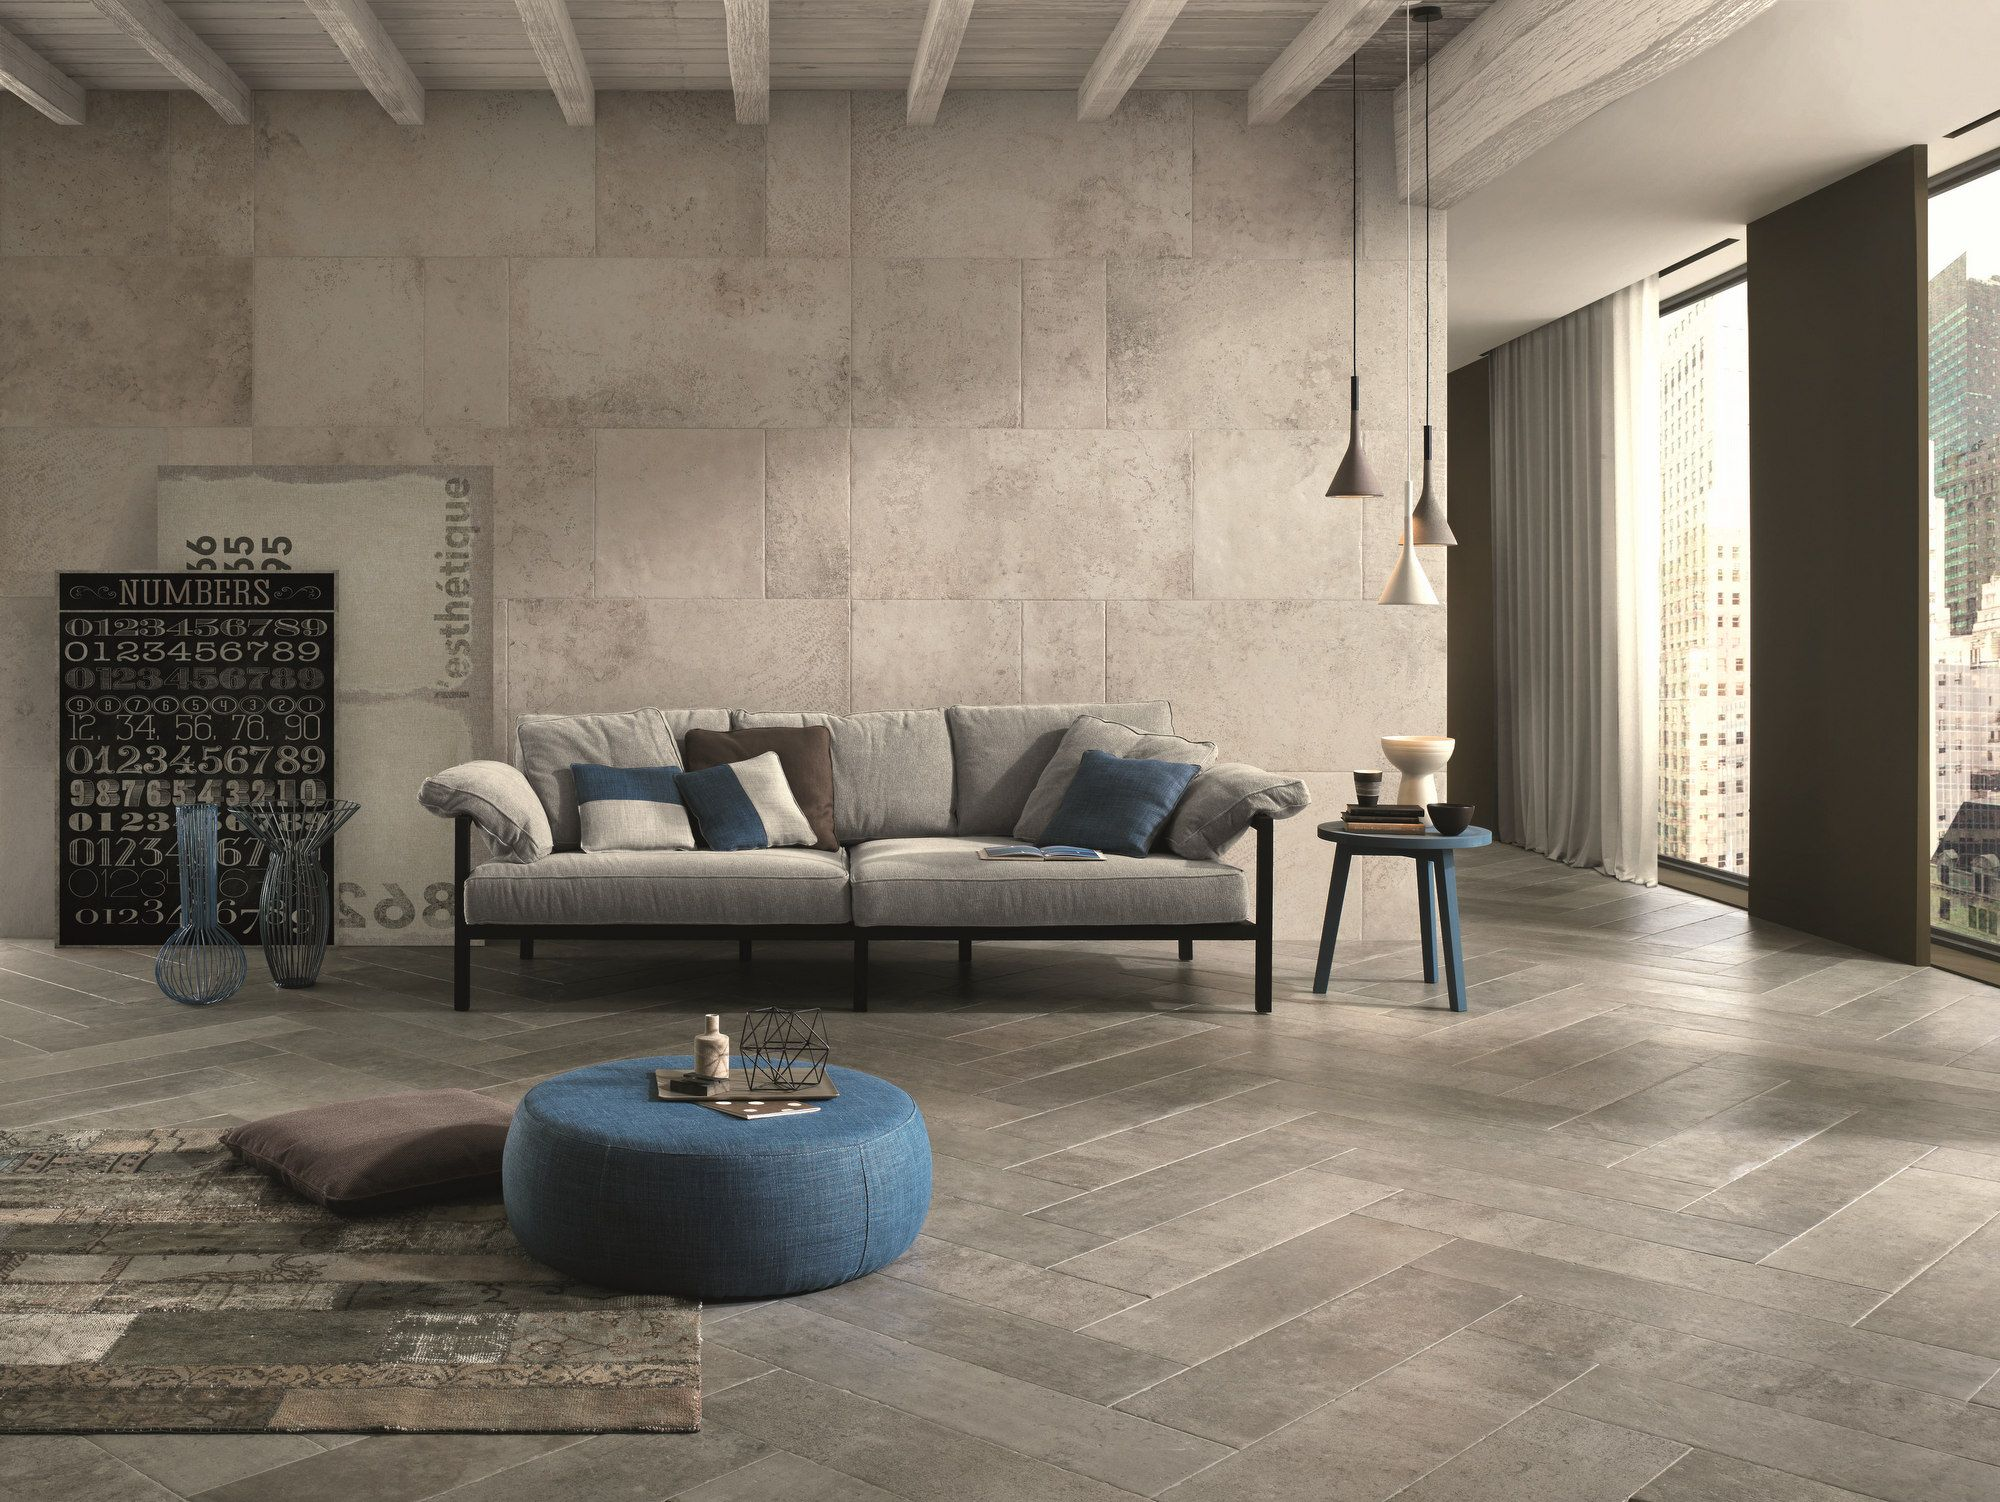 Full Body Porcelain Stoneware Wall Tiles Flooring Stone Age Chianca Stone Age Collection By Italgra Chandelier In Living Room Stone Flooring Blue Living Room #stone #floor #living #room